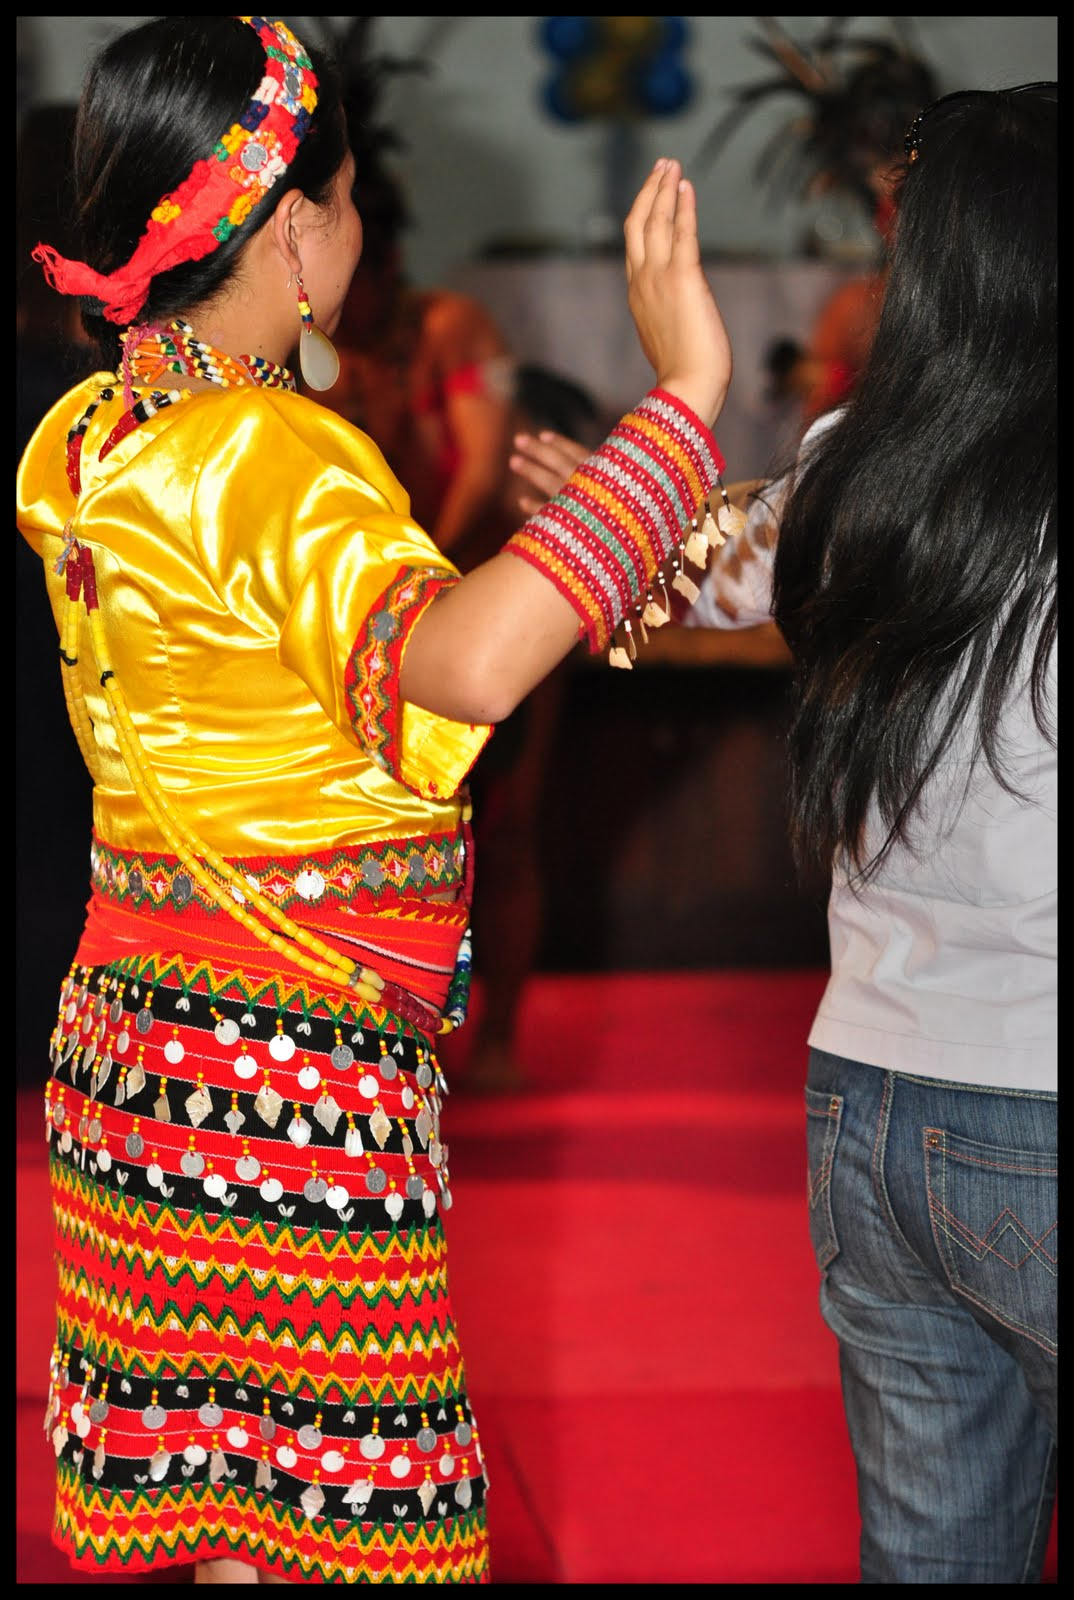 Filipino Native Costumes http://theclamorofkalinga.blogspot.com/2012/01/kalinga-native-dance-costume-filipino.html